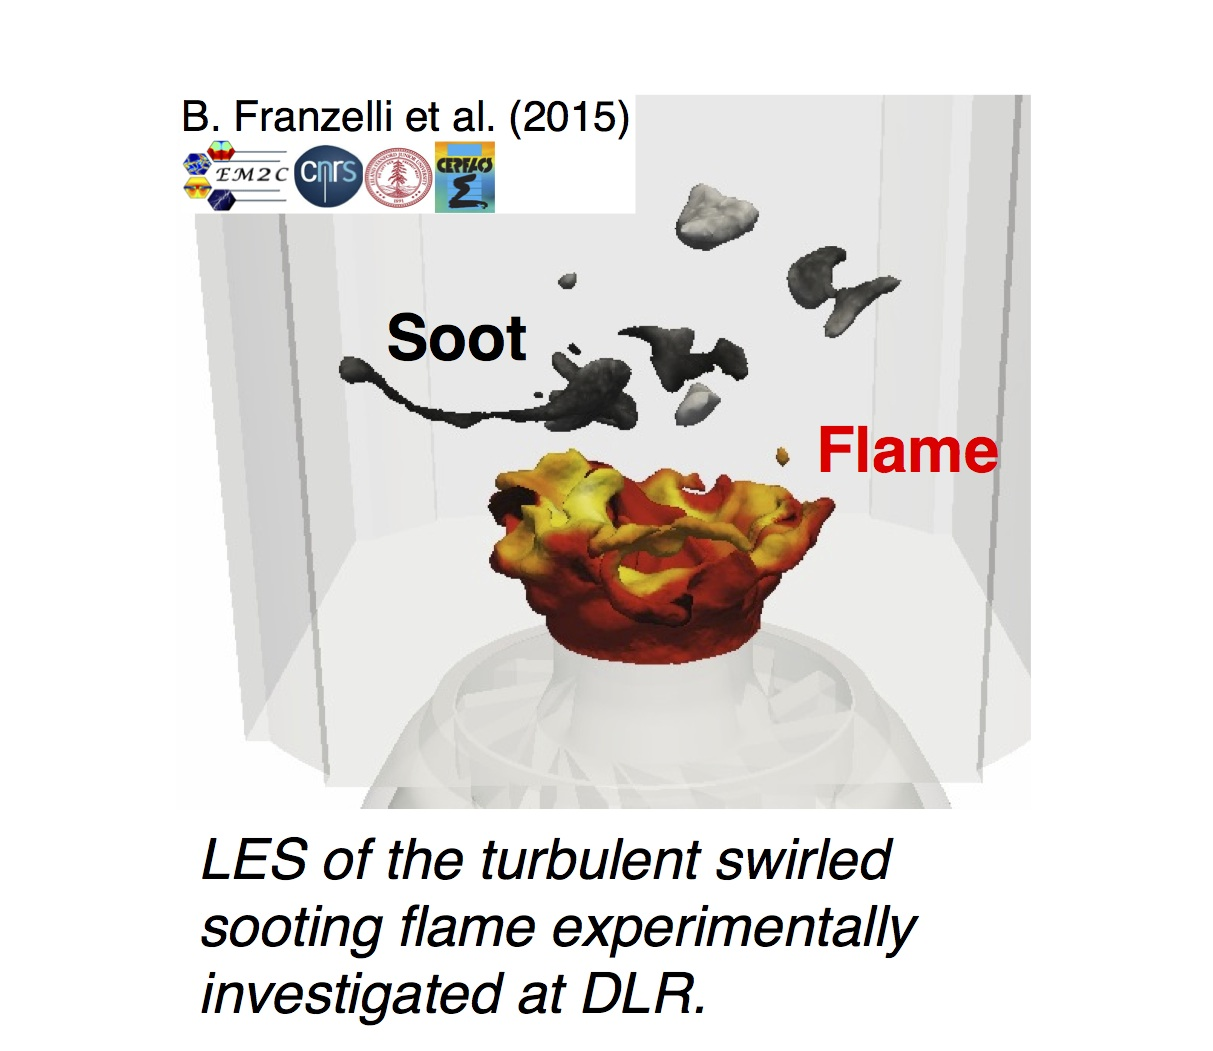 LES of FIRST sooting flame